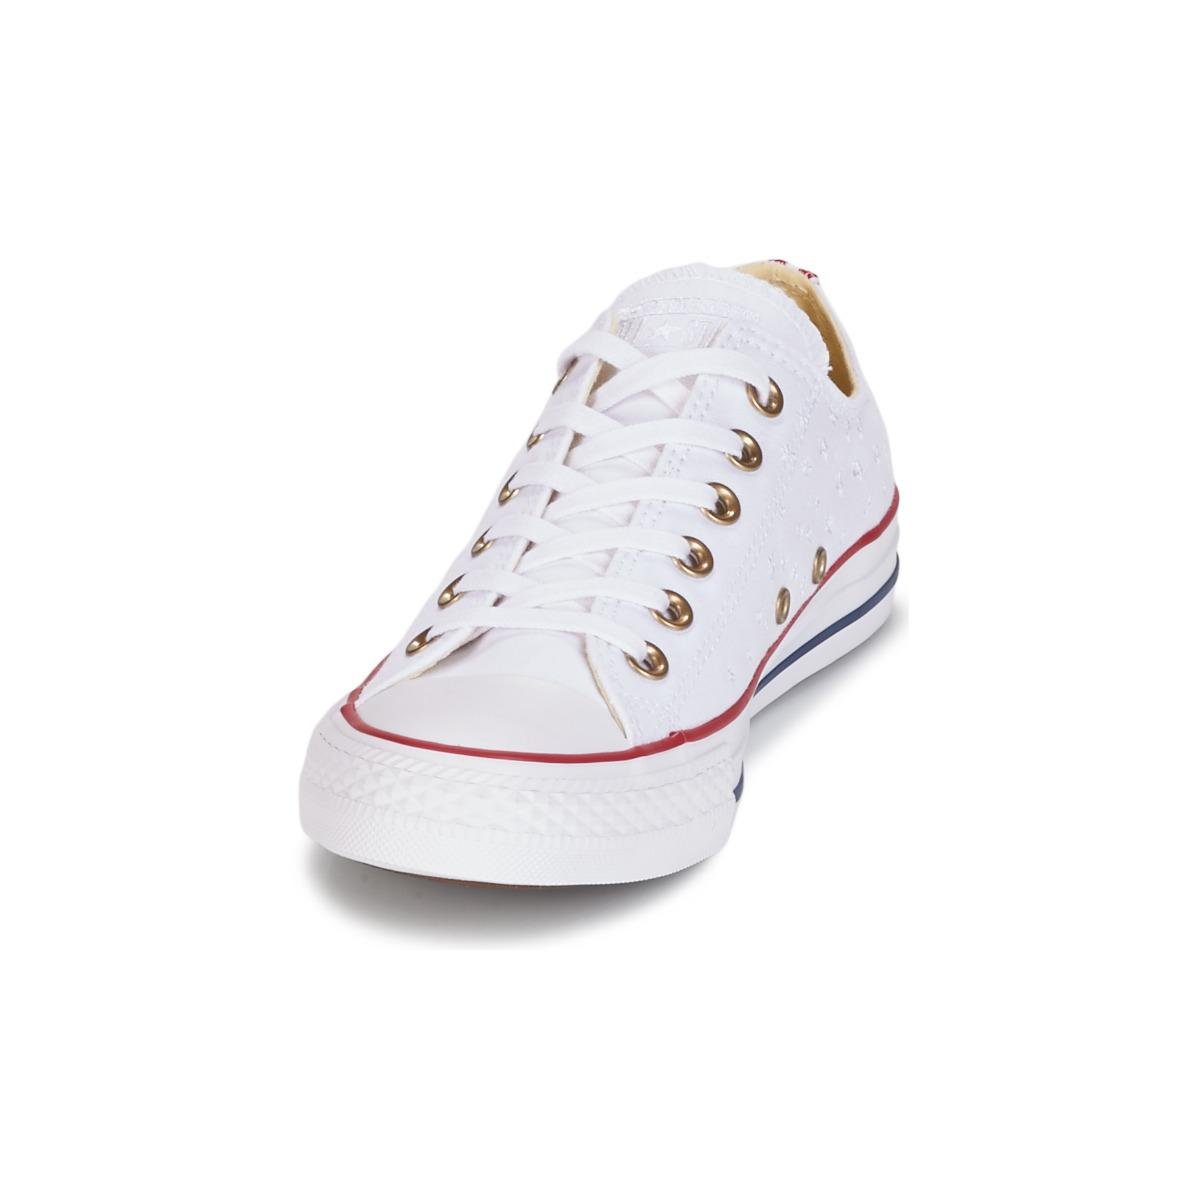 bb26b55a84e9 Converse Chuck Taylor All Star Americana Embroidery Ox Women s Shoes ...